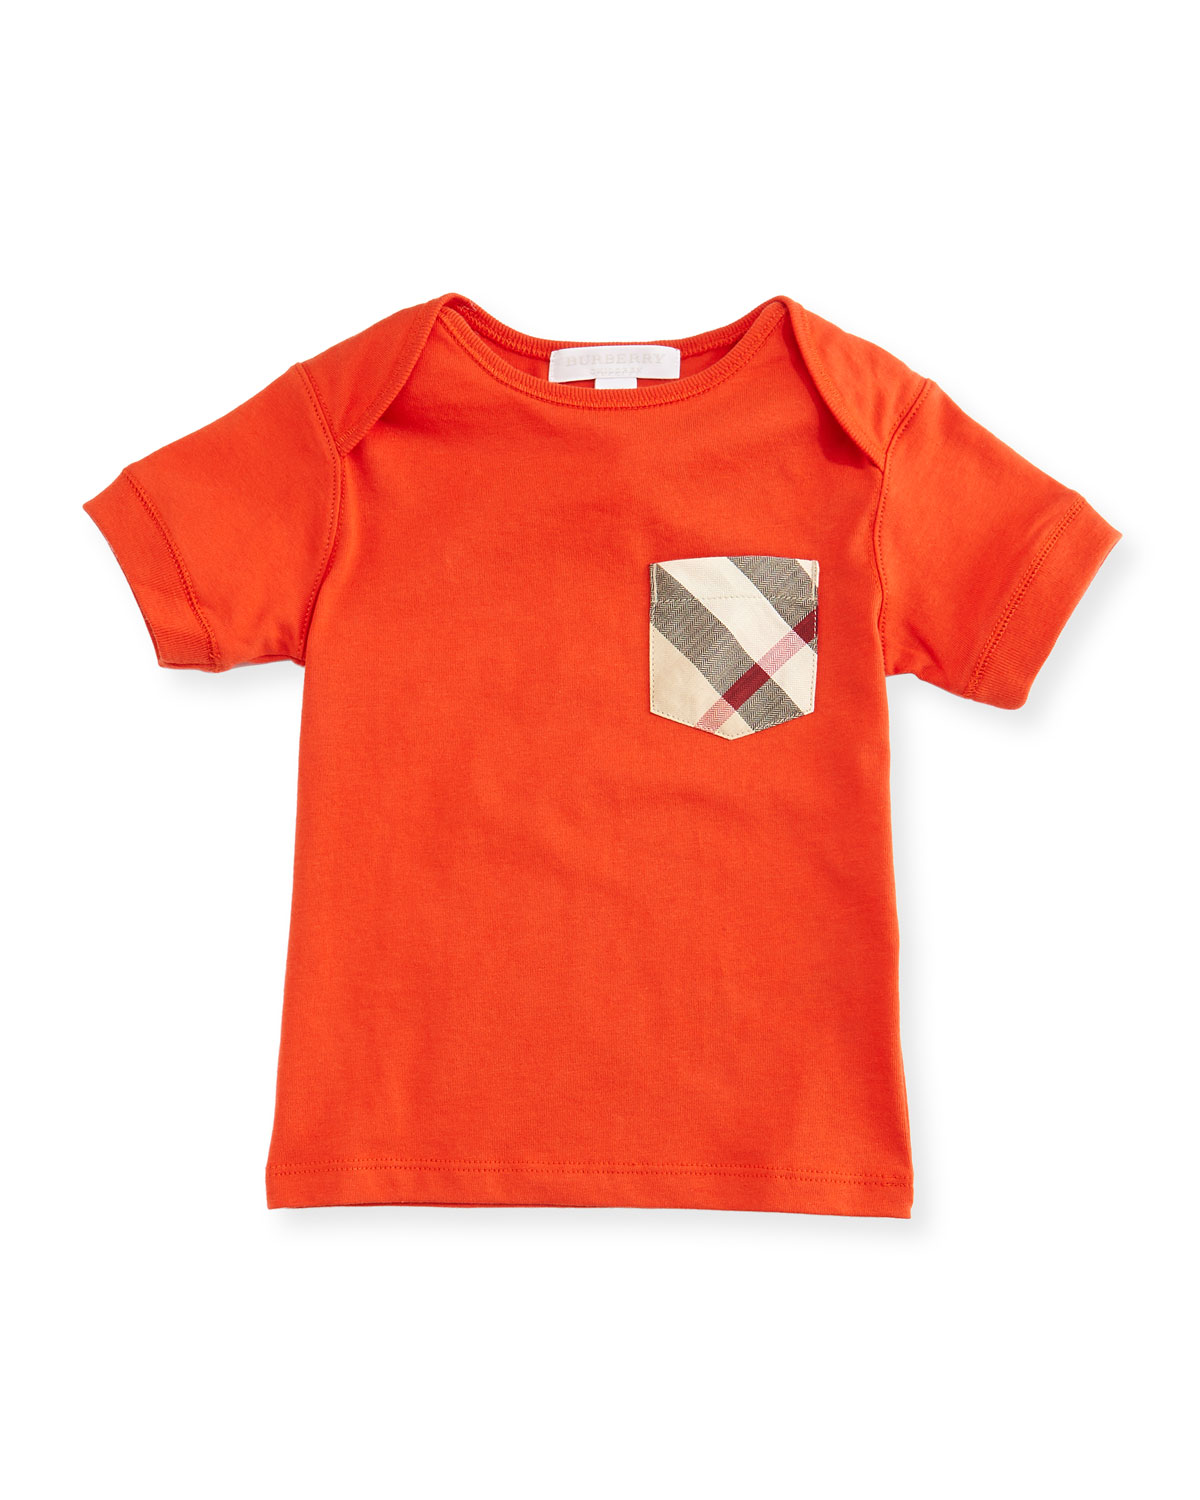 Callum Short-Sleeve Jersey Tee, Red-Orange, Size 6M-3